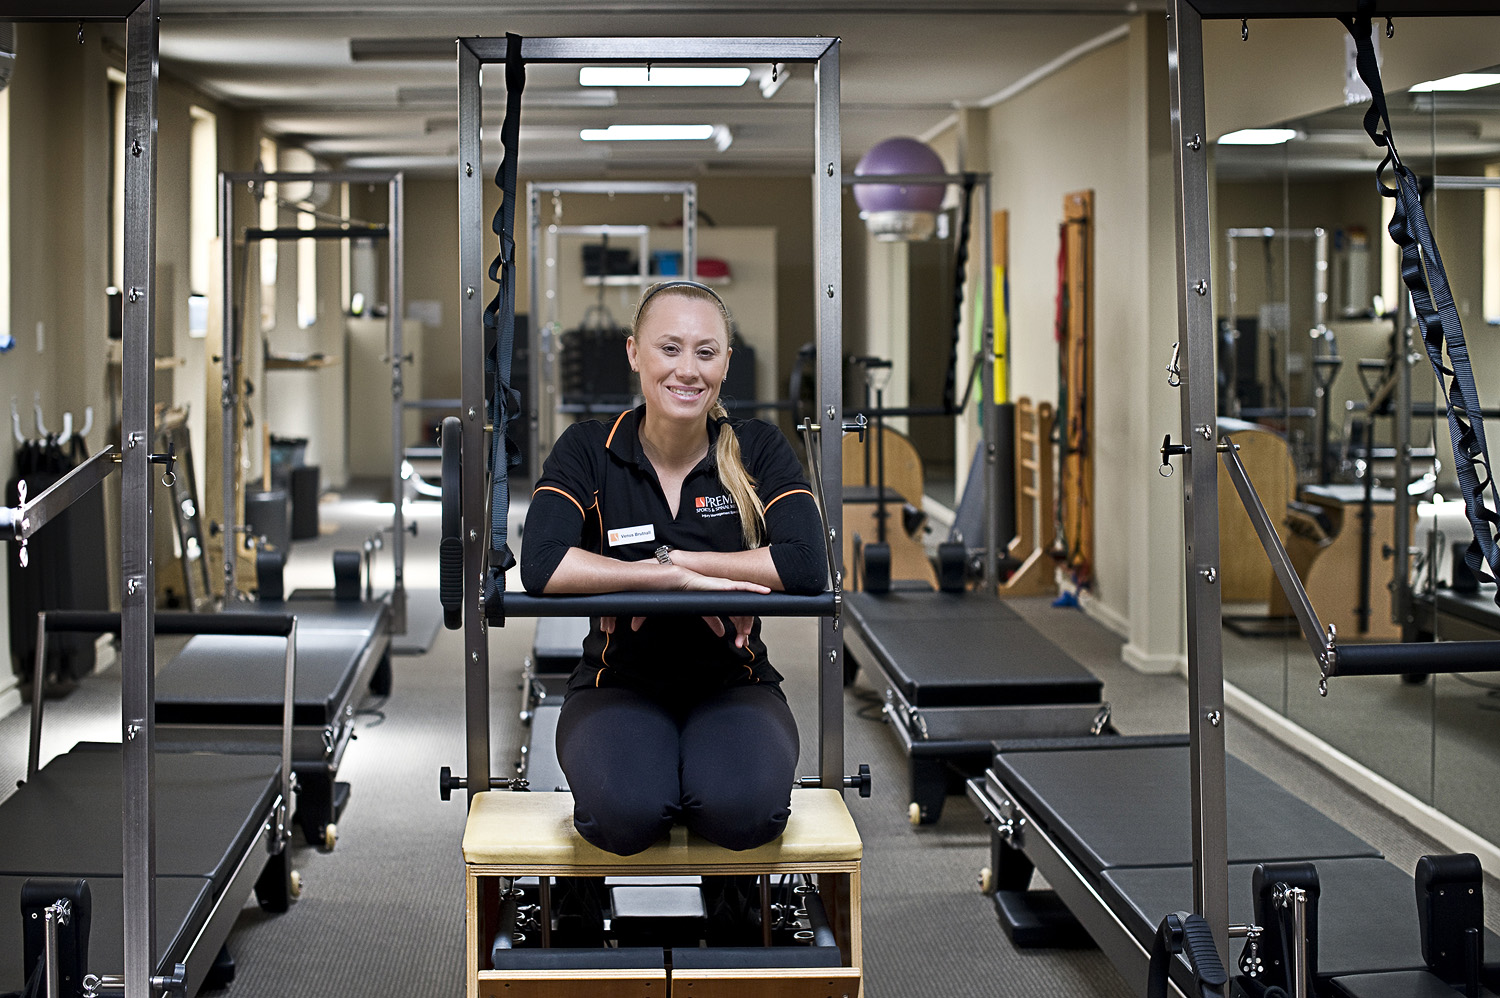 Venus Brutnall in one of the Premier Pilates studios she manages